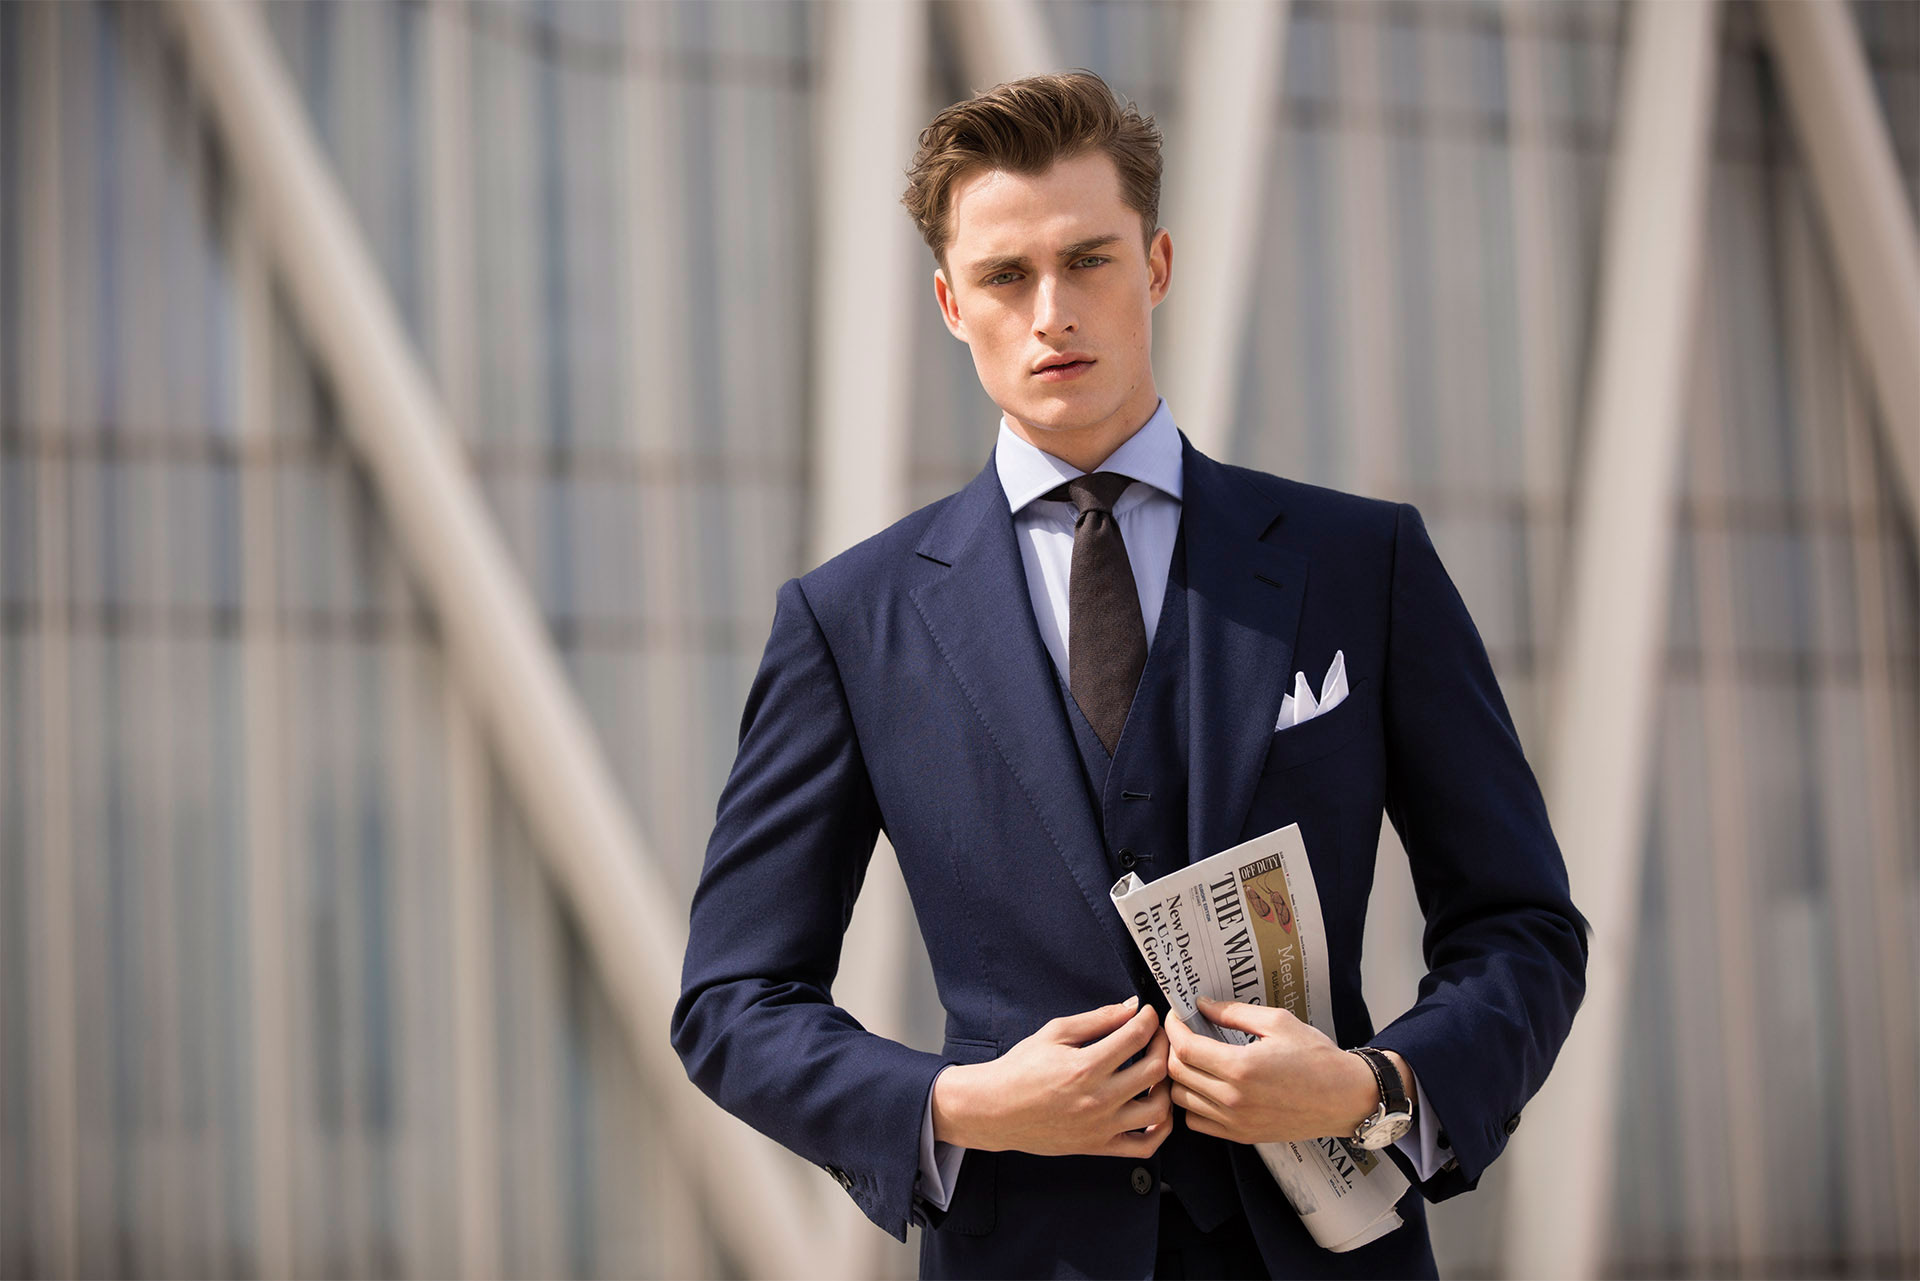 Business Luxe: Bastiaan van Gaalen Models Massimo Dutti 'Personal Tailoring' Suits